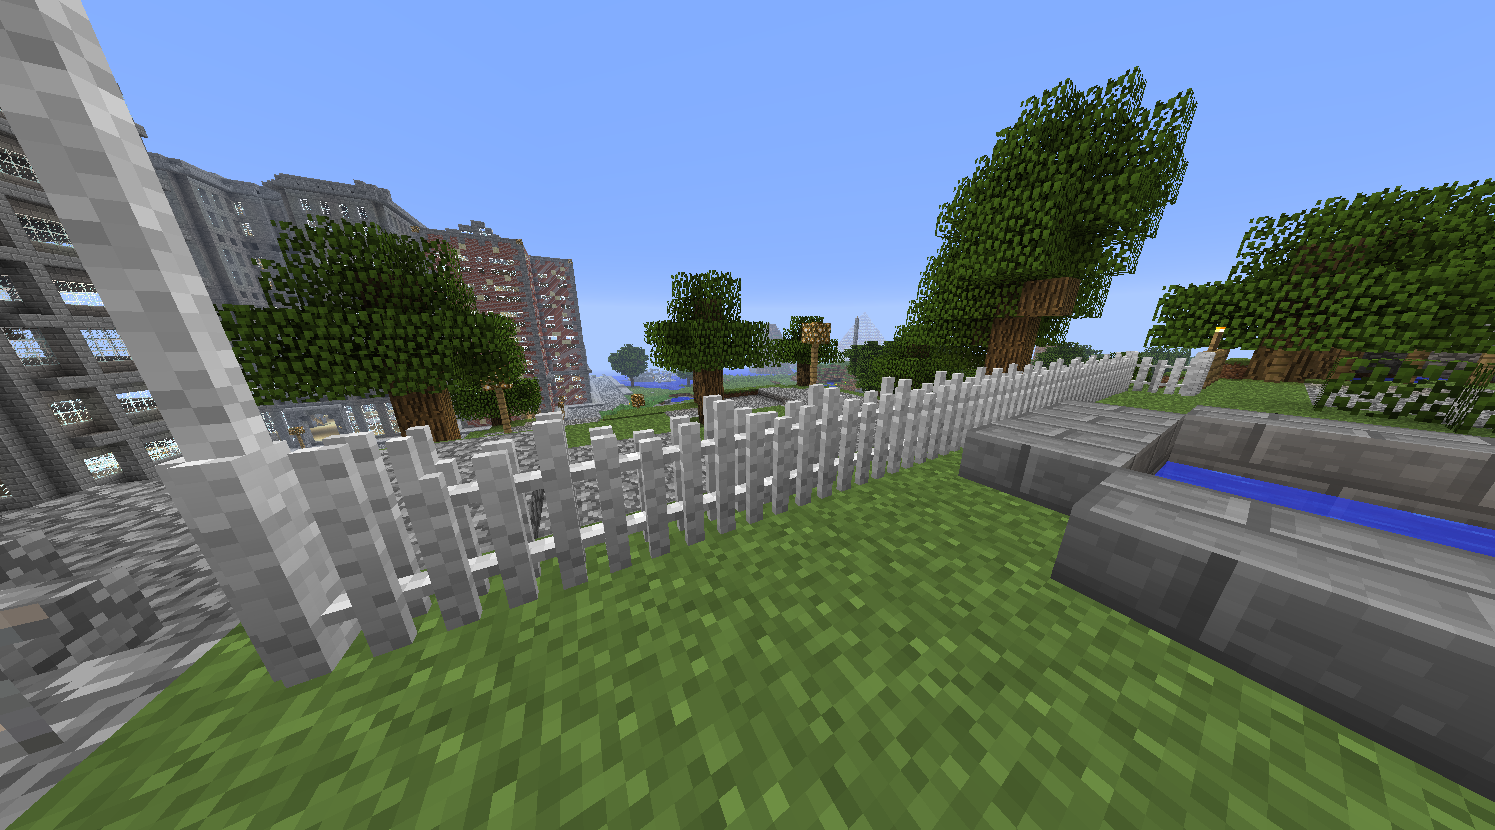 fence minecraft. Picket Fences Fence Minecraft